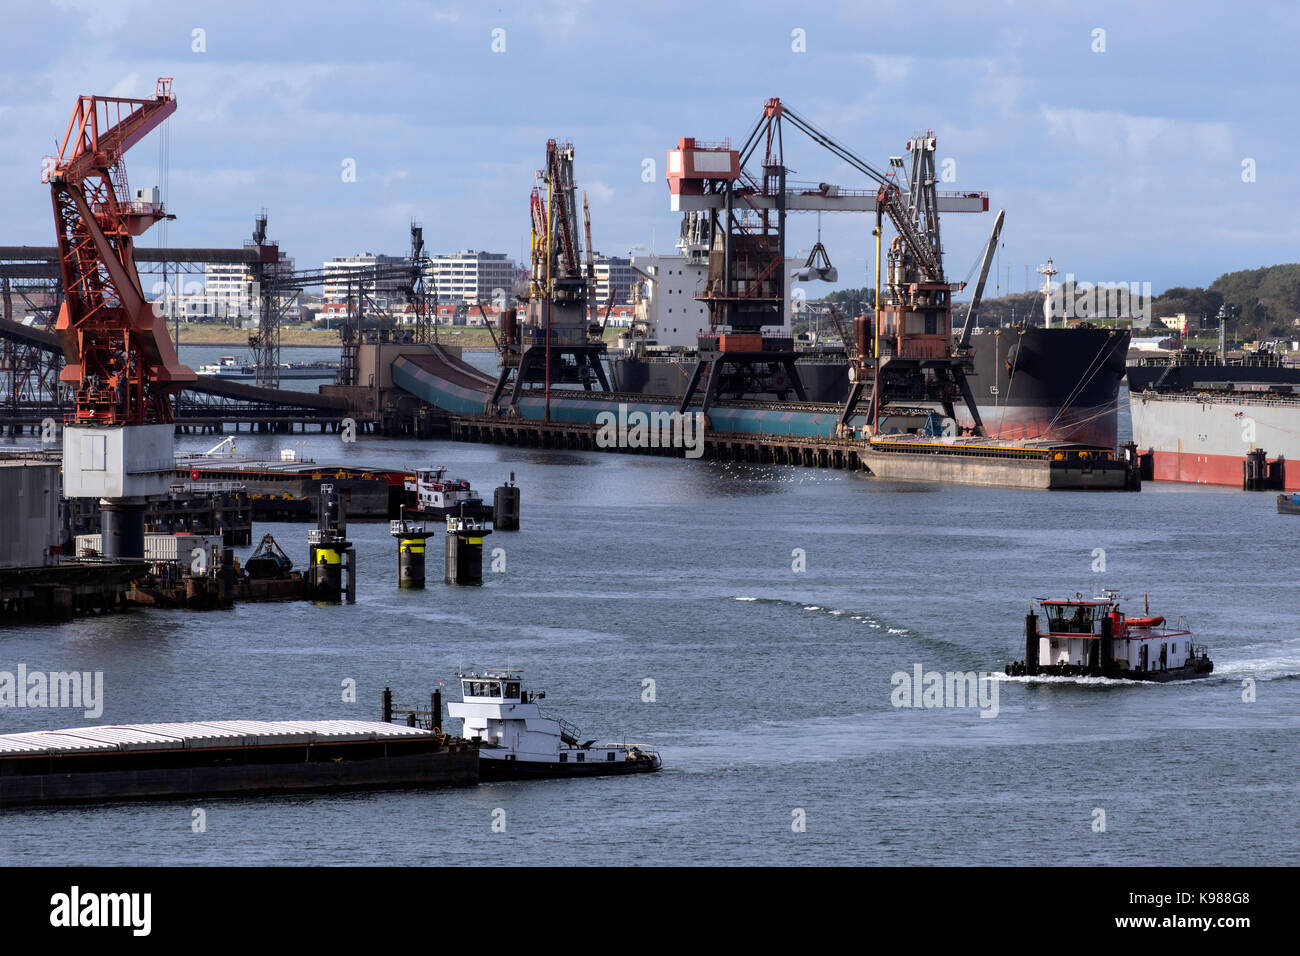 Ships being unloaded in the Port of Rotterdam in the Netherlands. - Stock Image